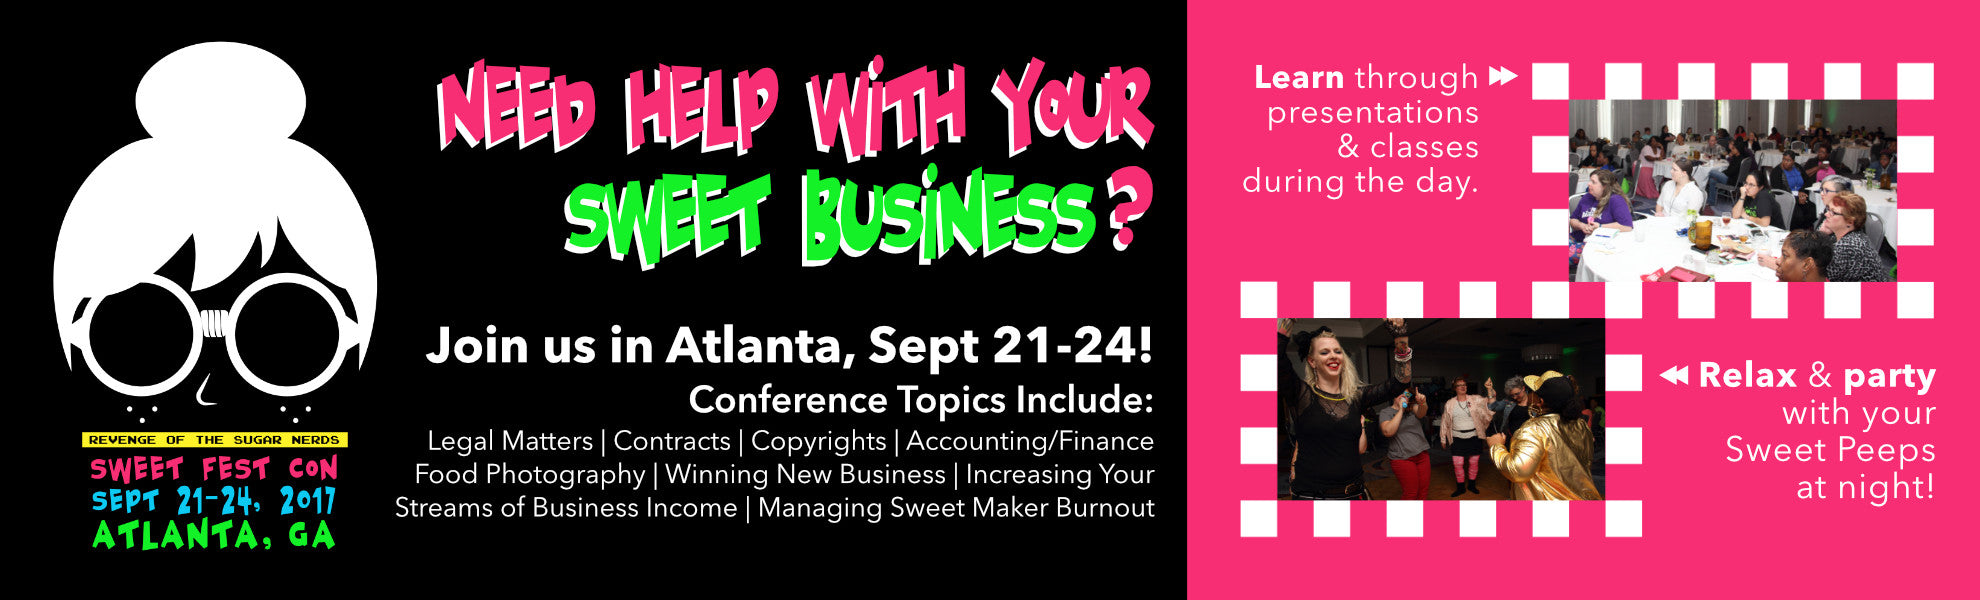 Sweet Fest Con 2017, is a business focused conference for aspiring & established bakery and sweet business owners to learn about pricing, marketing and growing their sweet businesses.